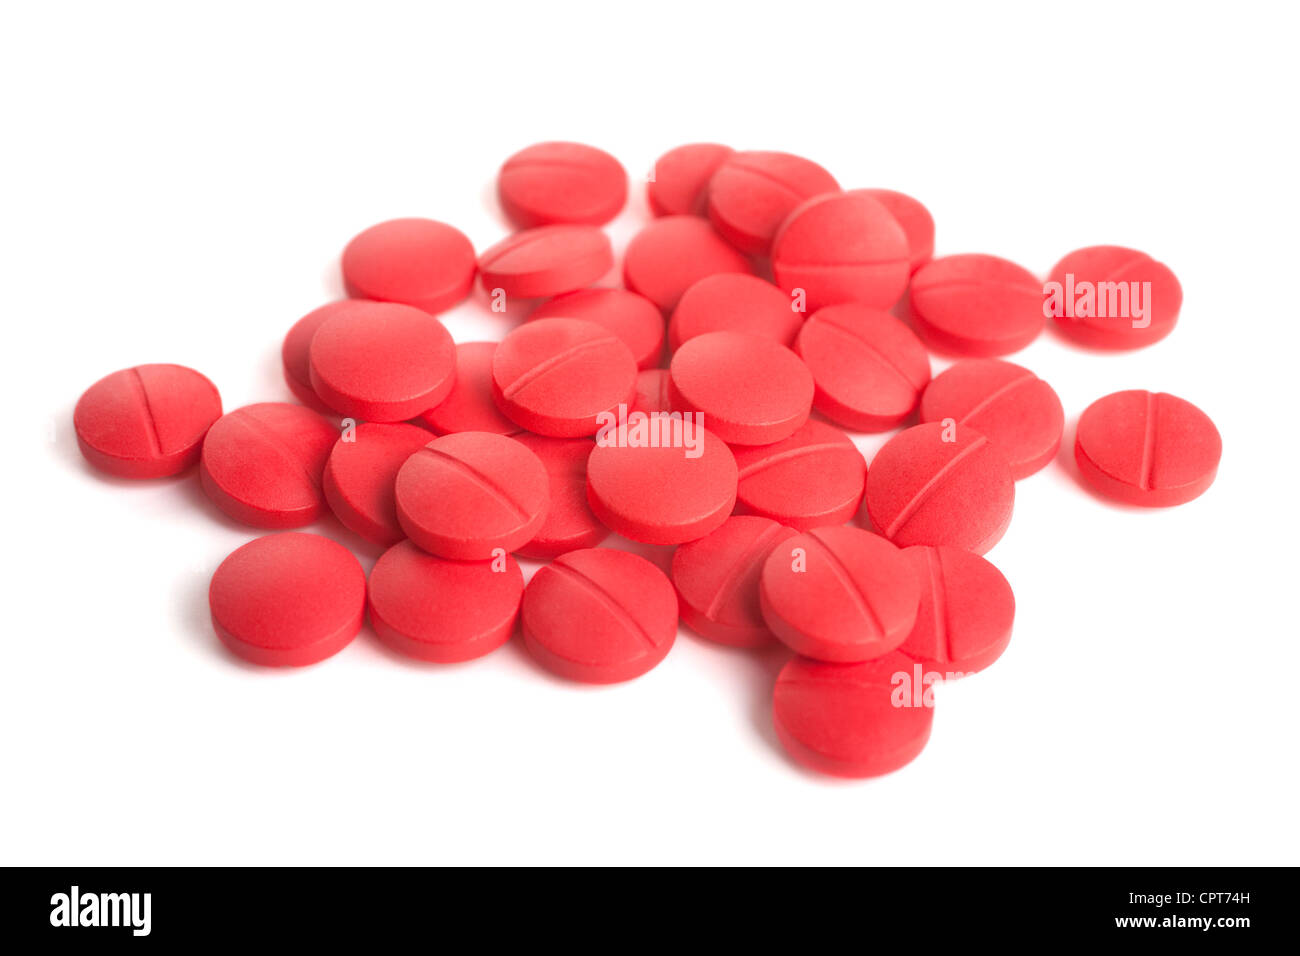 Pile of red pills on a white background. - Stock Image